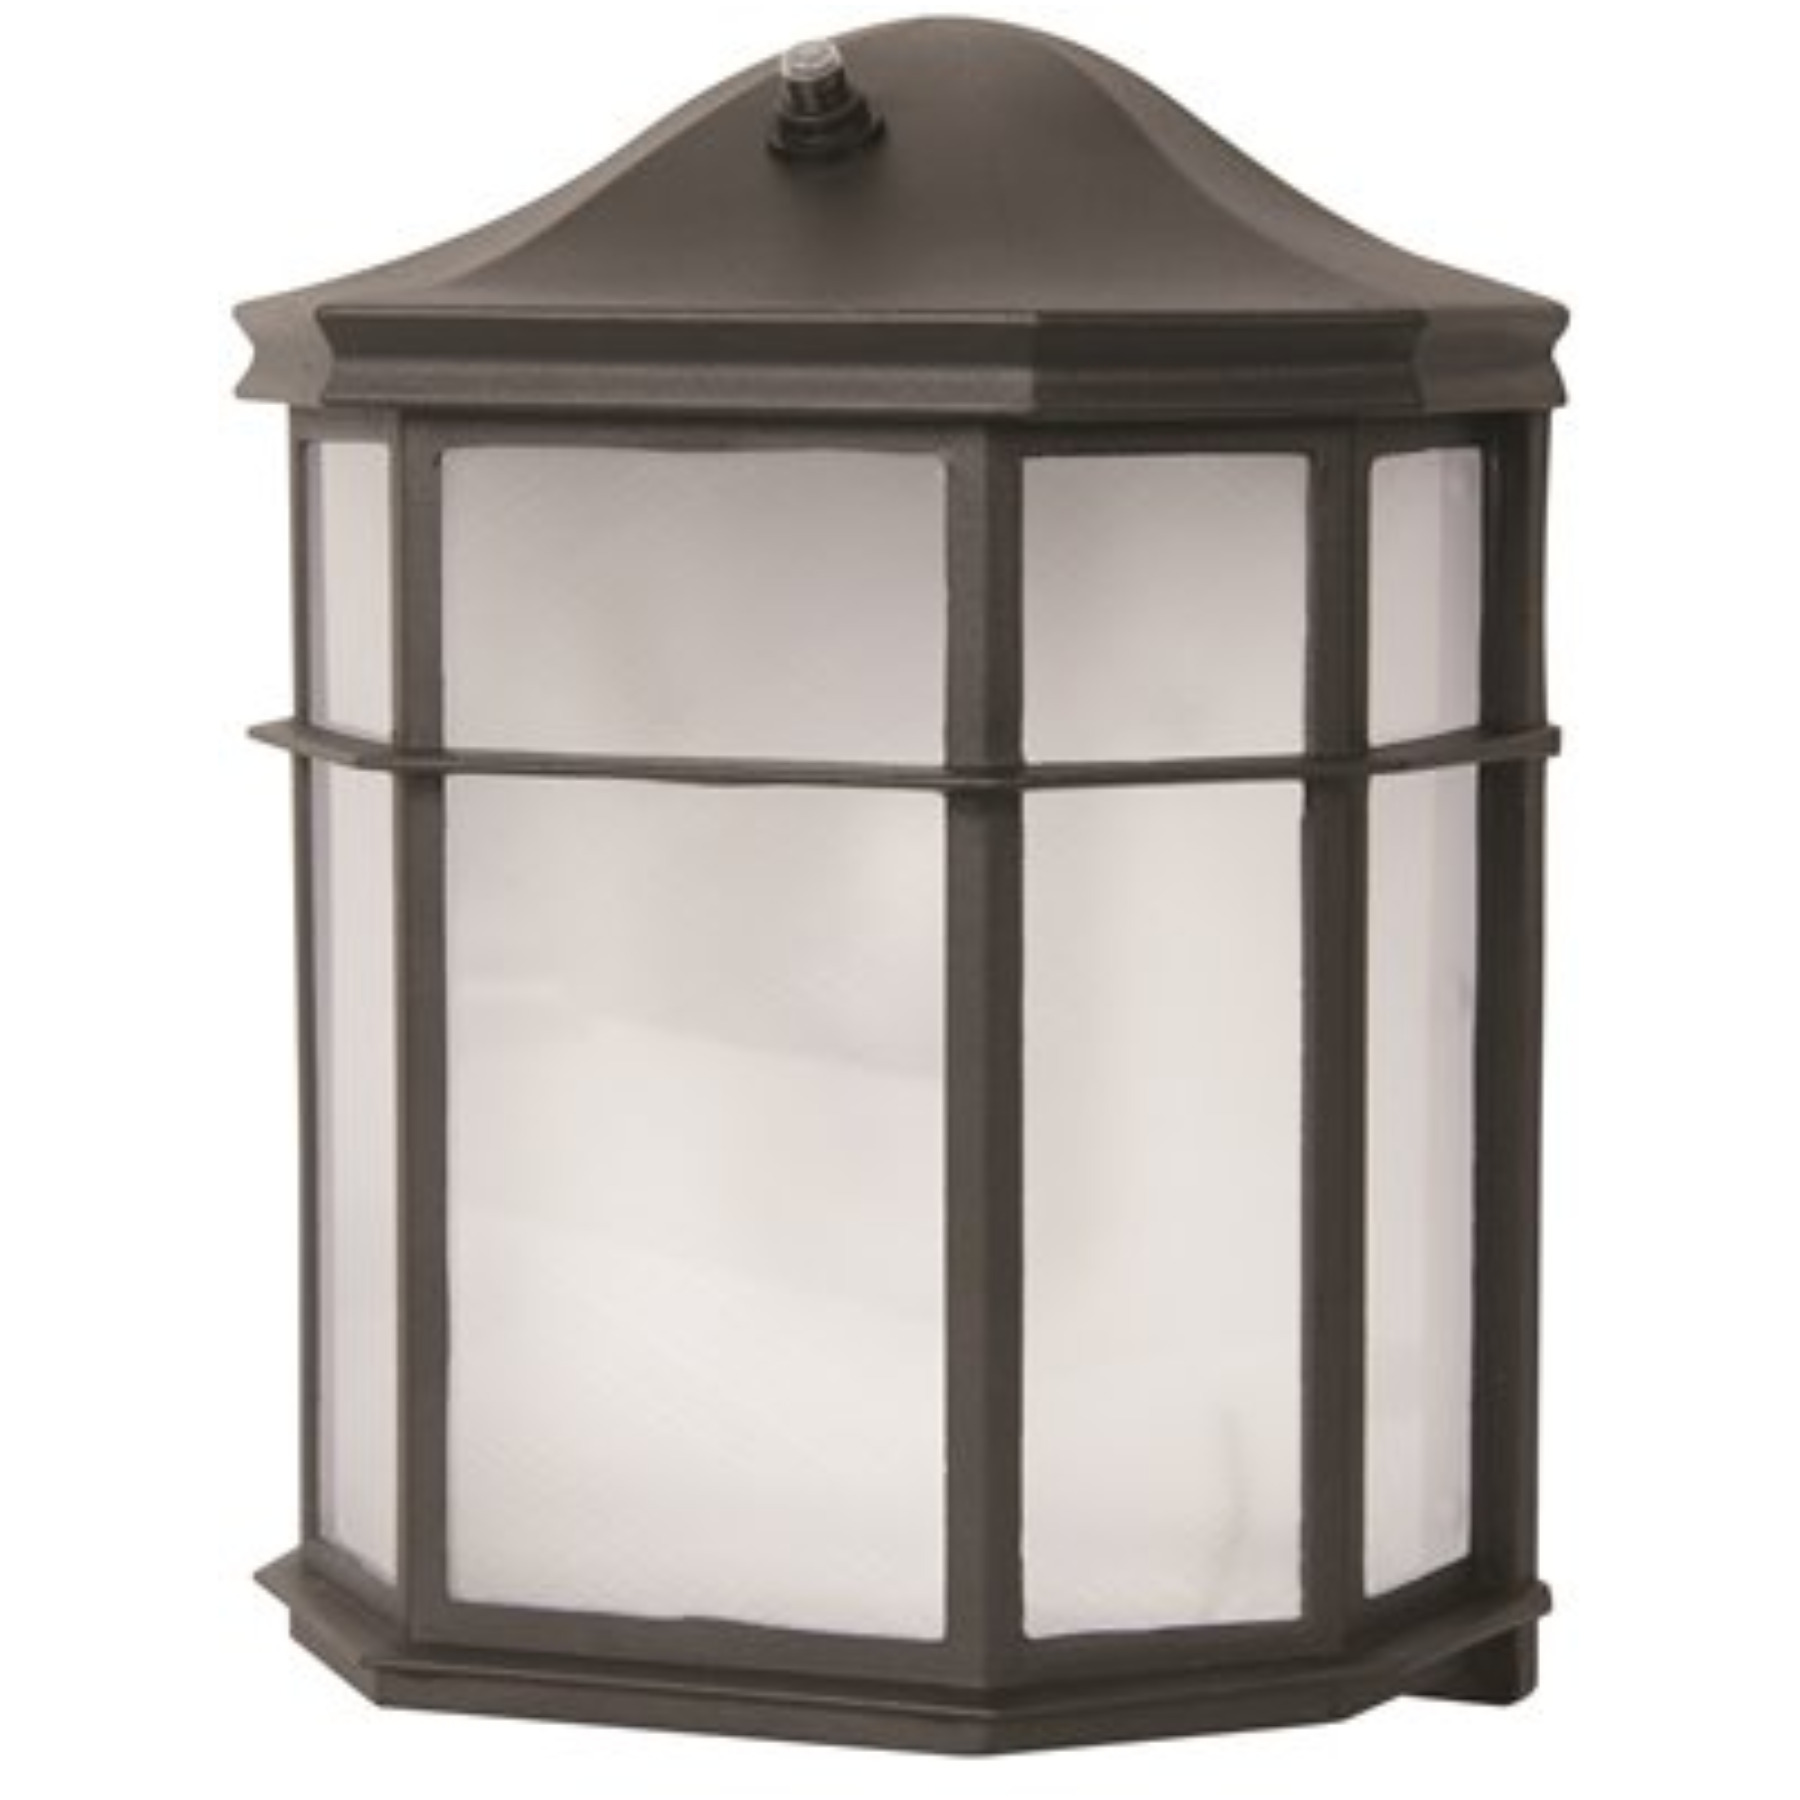 LED OUTDOOR LANTERN WITH PHOTO CELL, ACRYLIC LENS, 9-1/2 IN., BLACK, USES (1) 9-WATT LED INTEGRATED PANEL